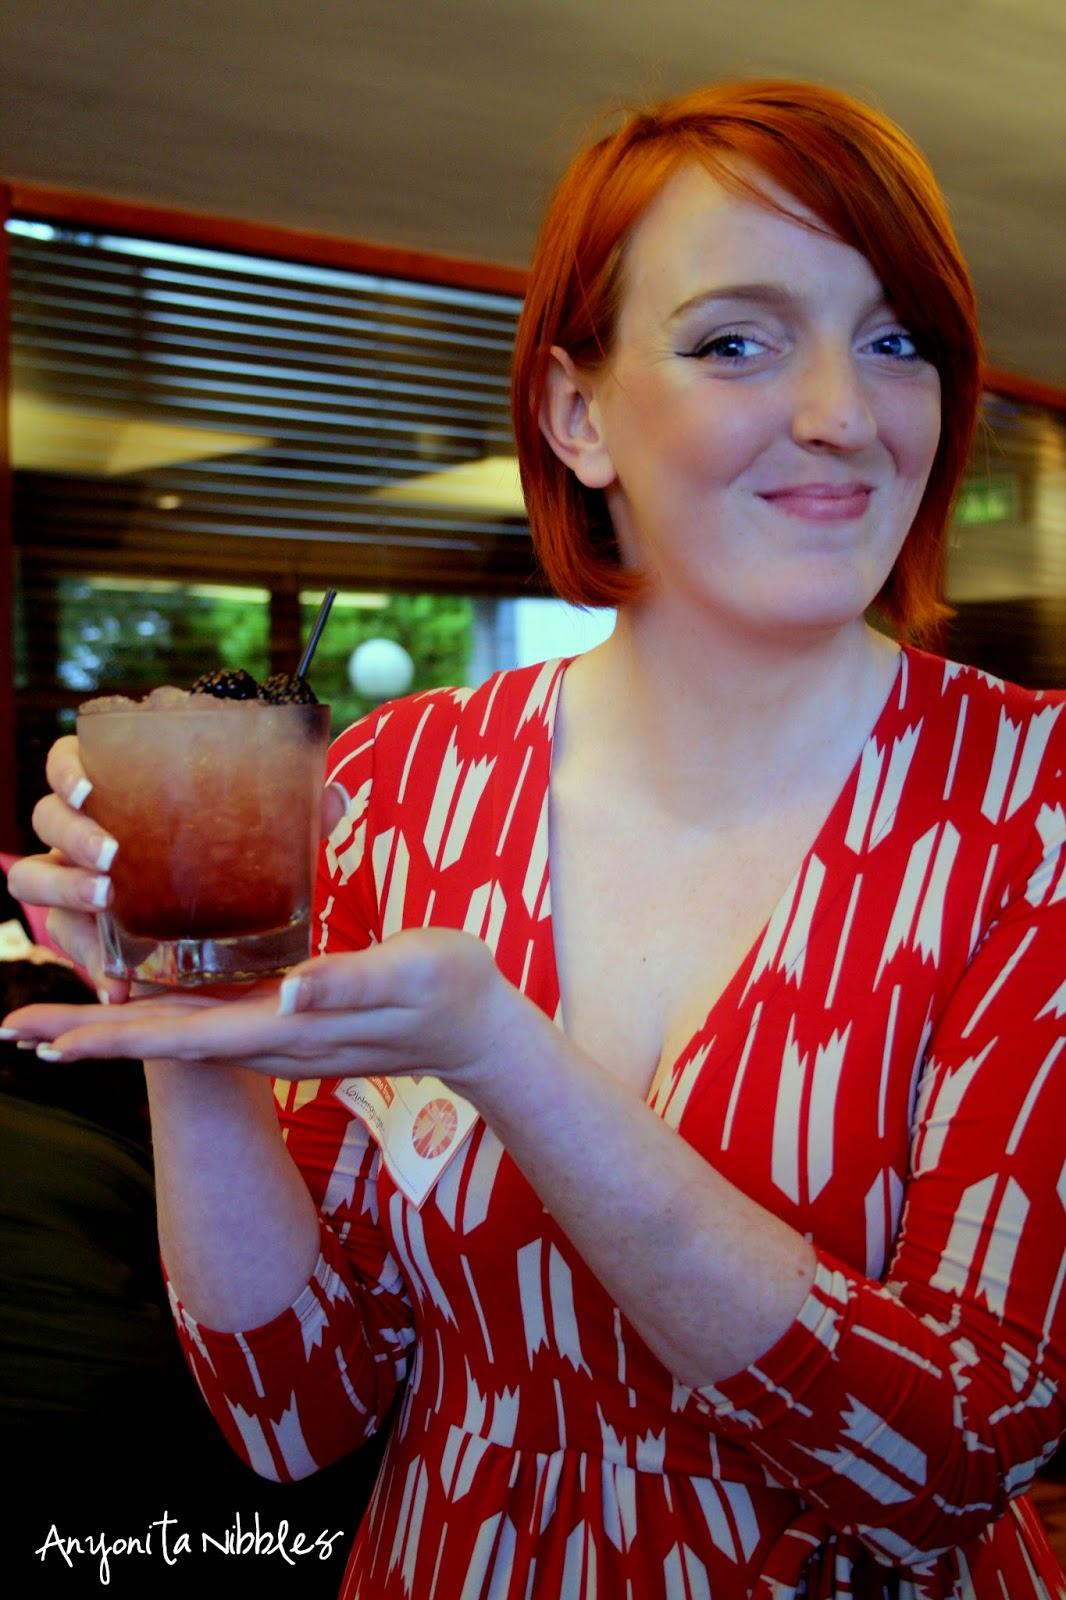 Charlotte from Gin and Ginger models a Bramble cocktail from Anyonita Nibbles